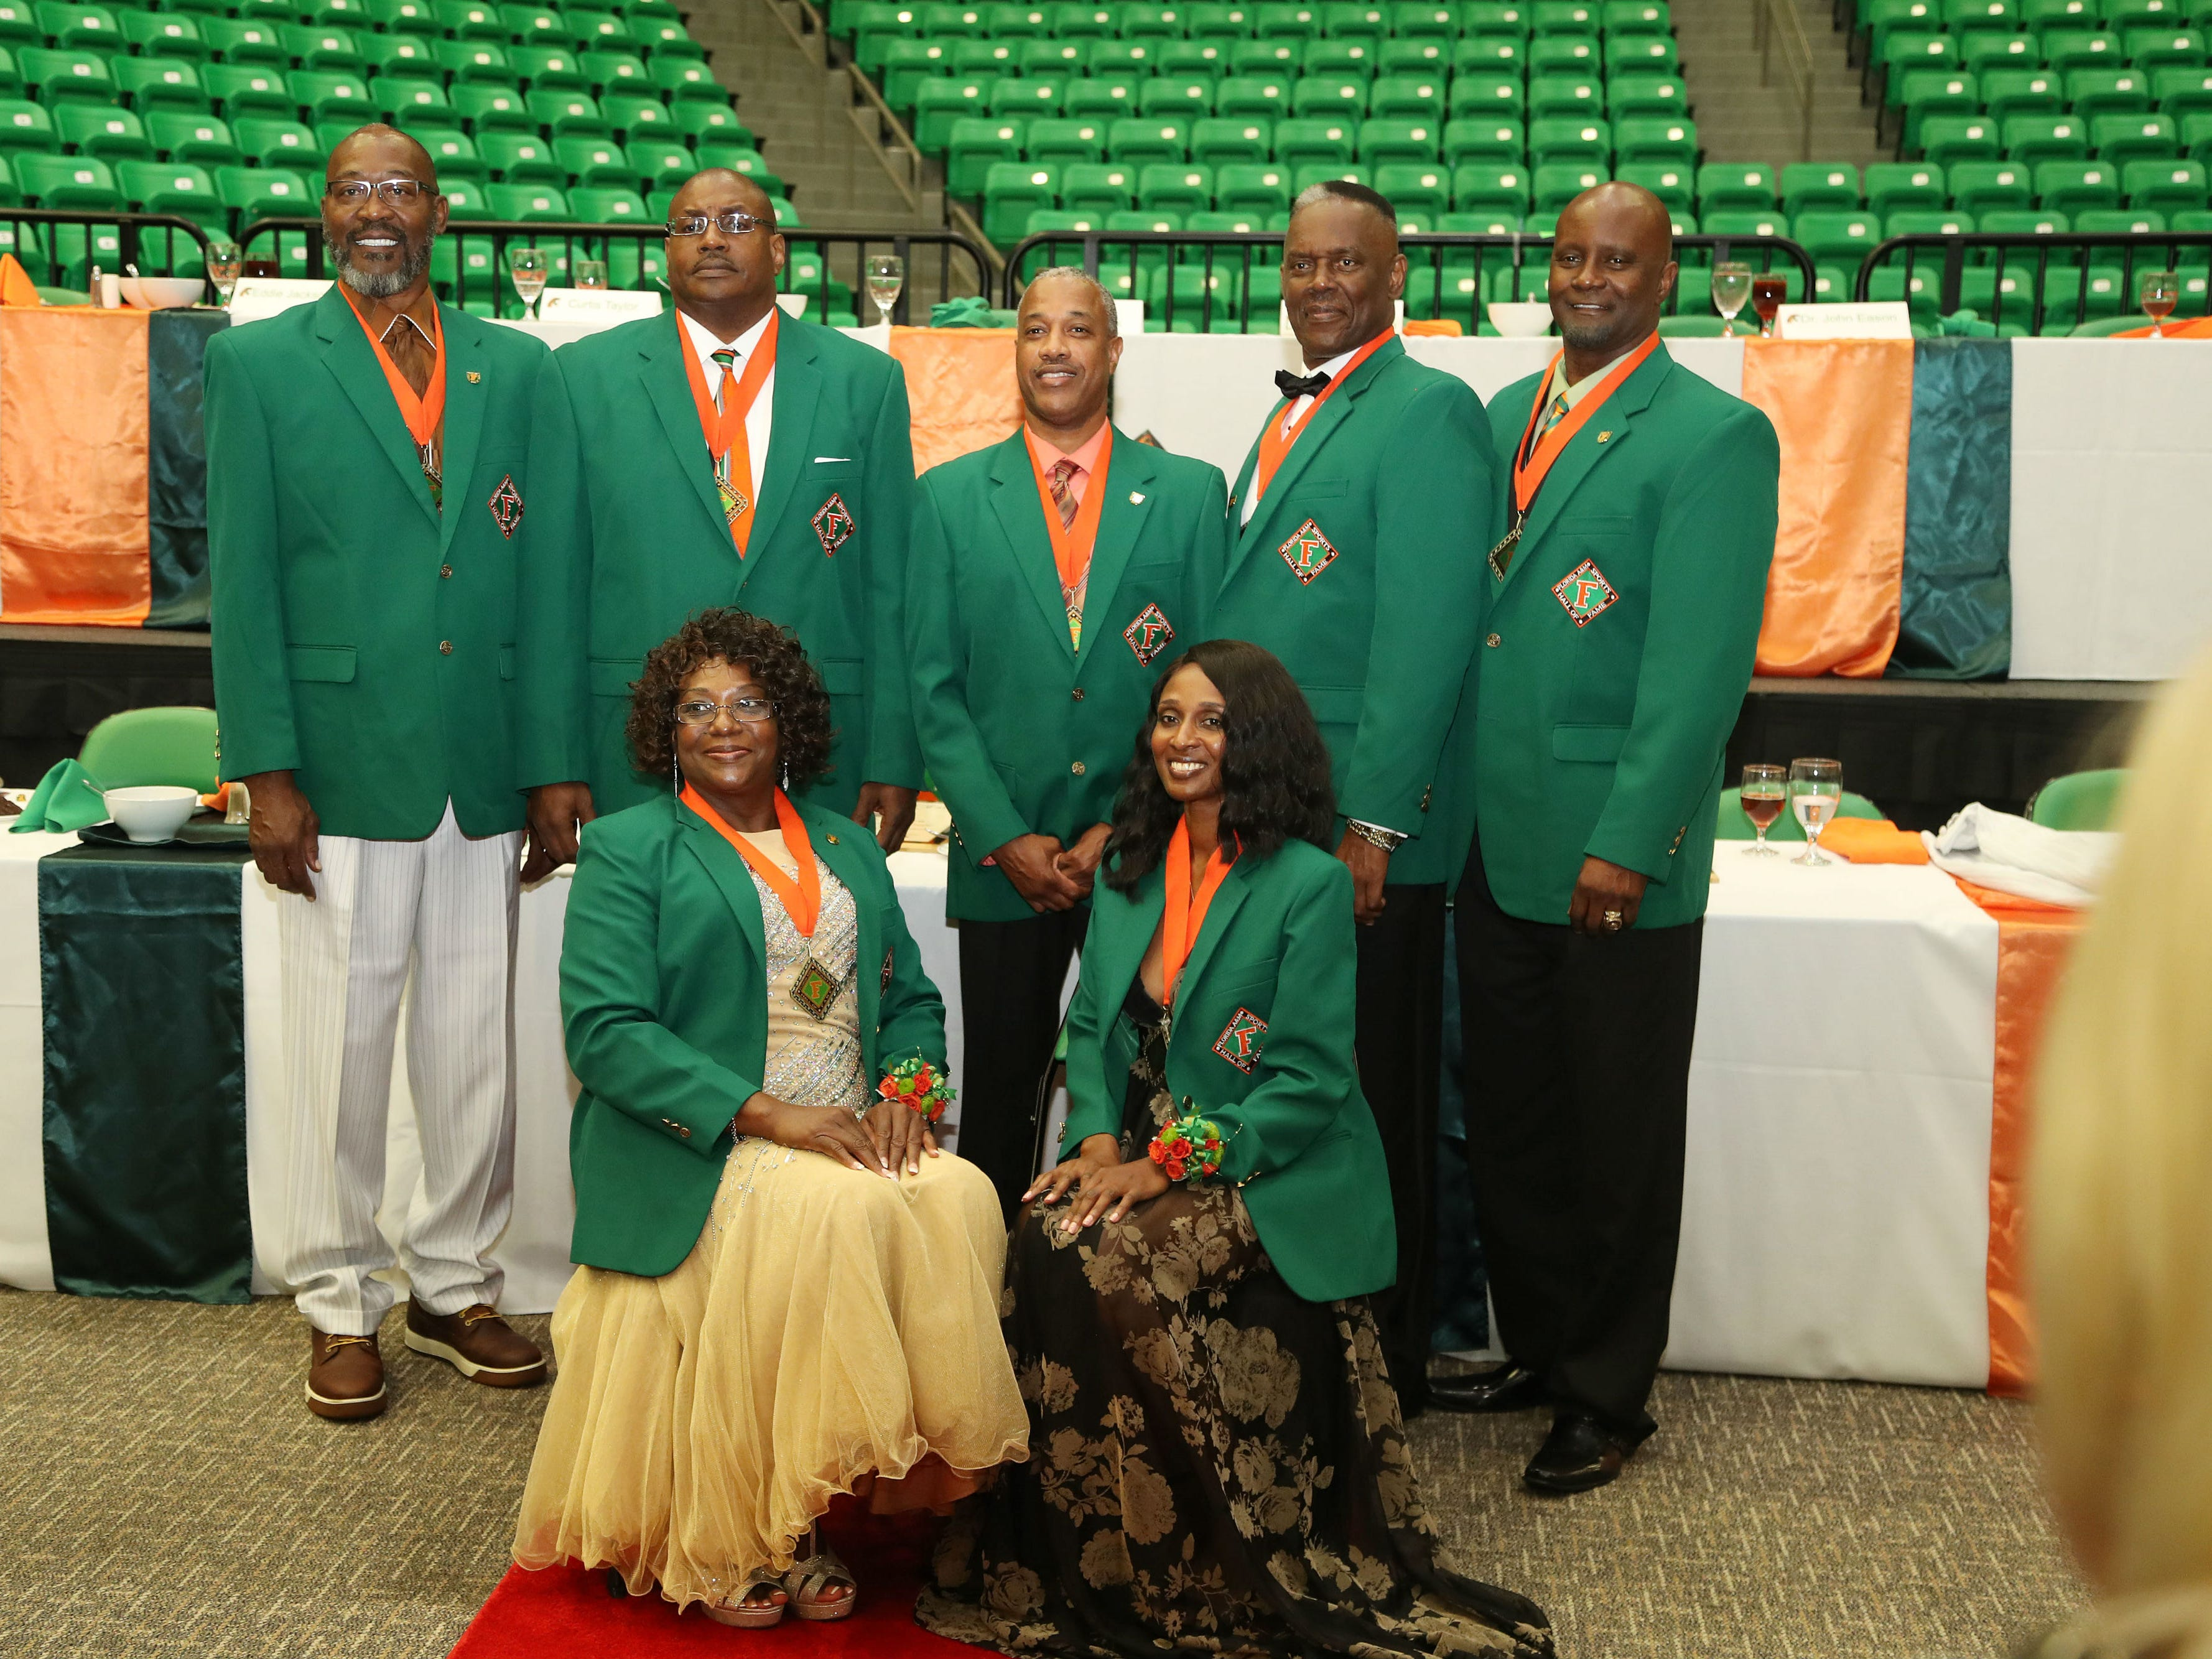 FAMU Sports Hall of Fame Class of 2018. From left to right: Bryan Brewer,